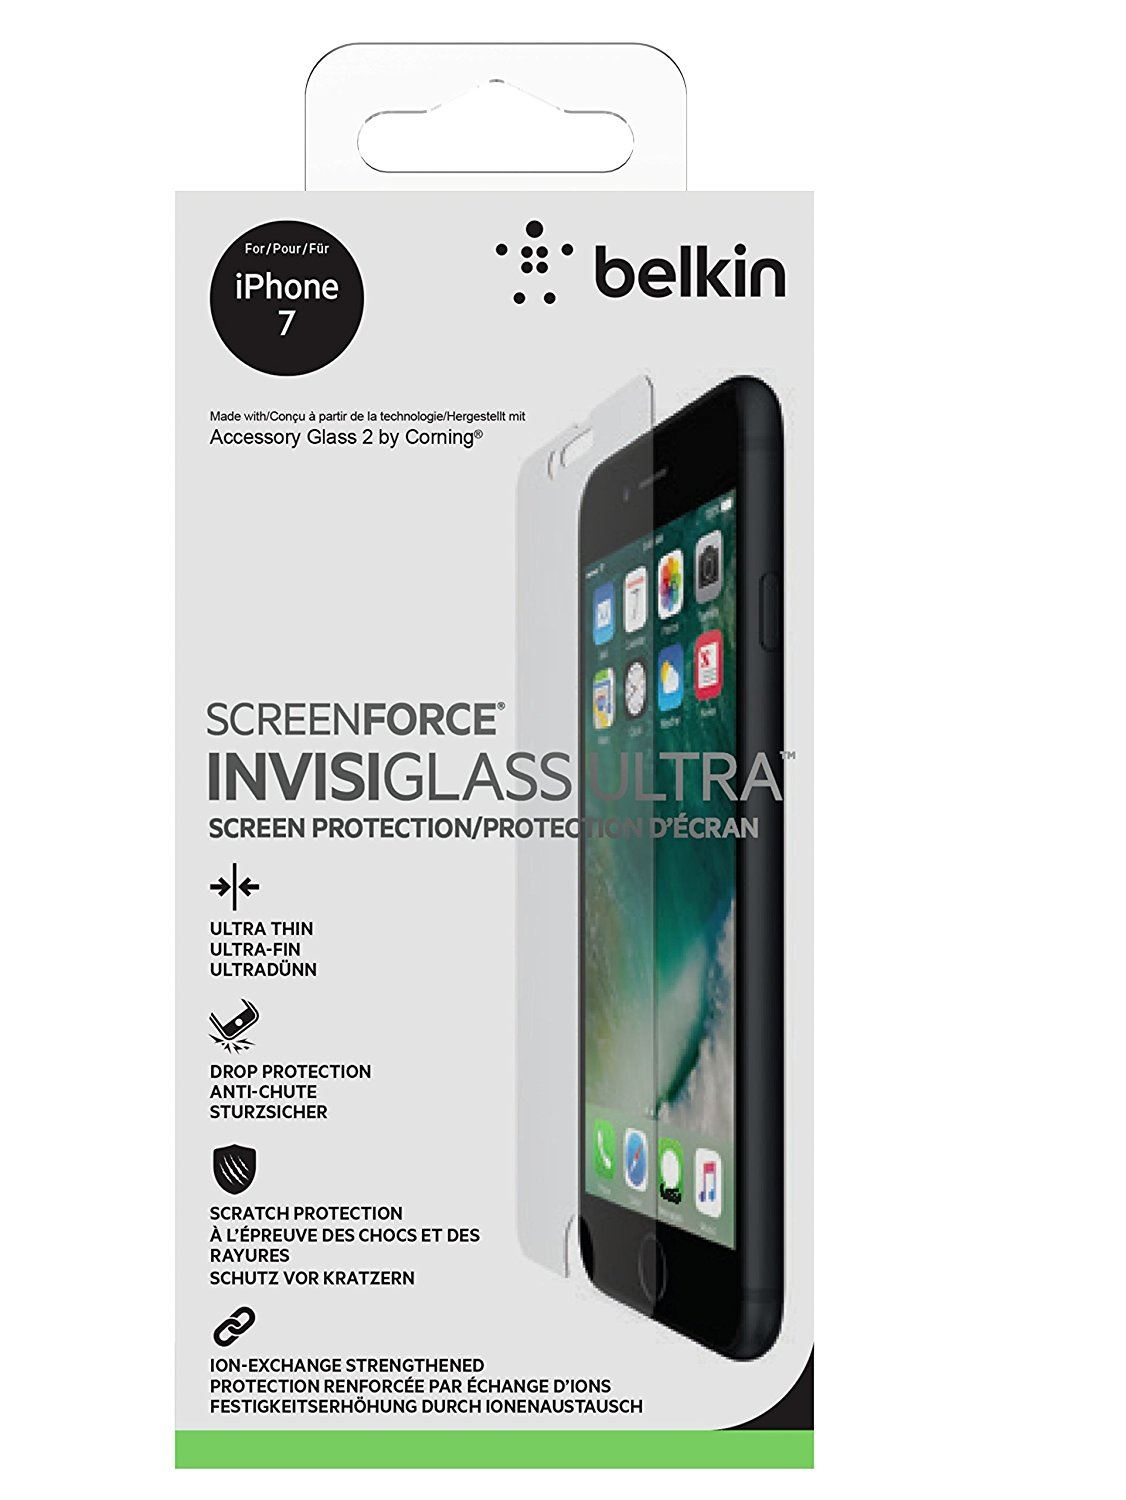 belkin screenforce invisiglass ultra glass screen protector for iphone 7 f8w812 ebay. Black Bedroom Furniture Sets. Home Design Ideas